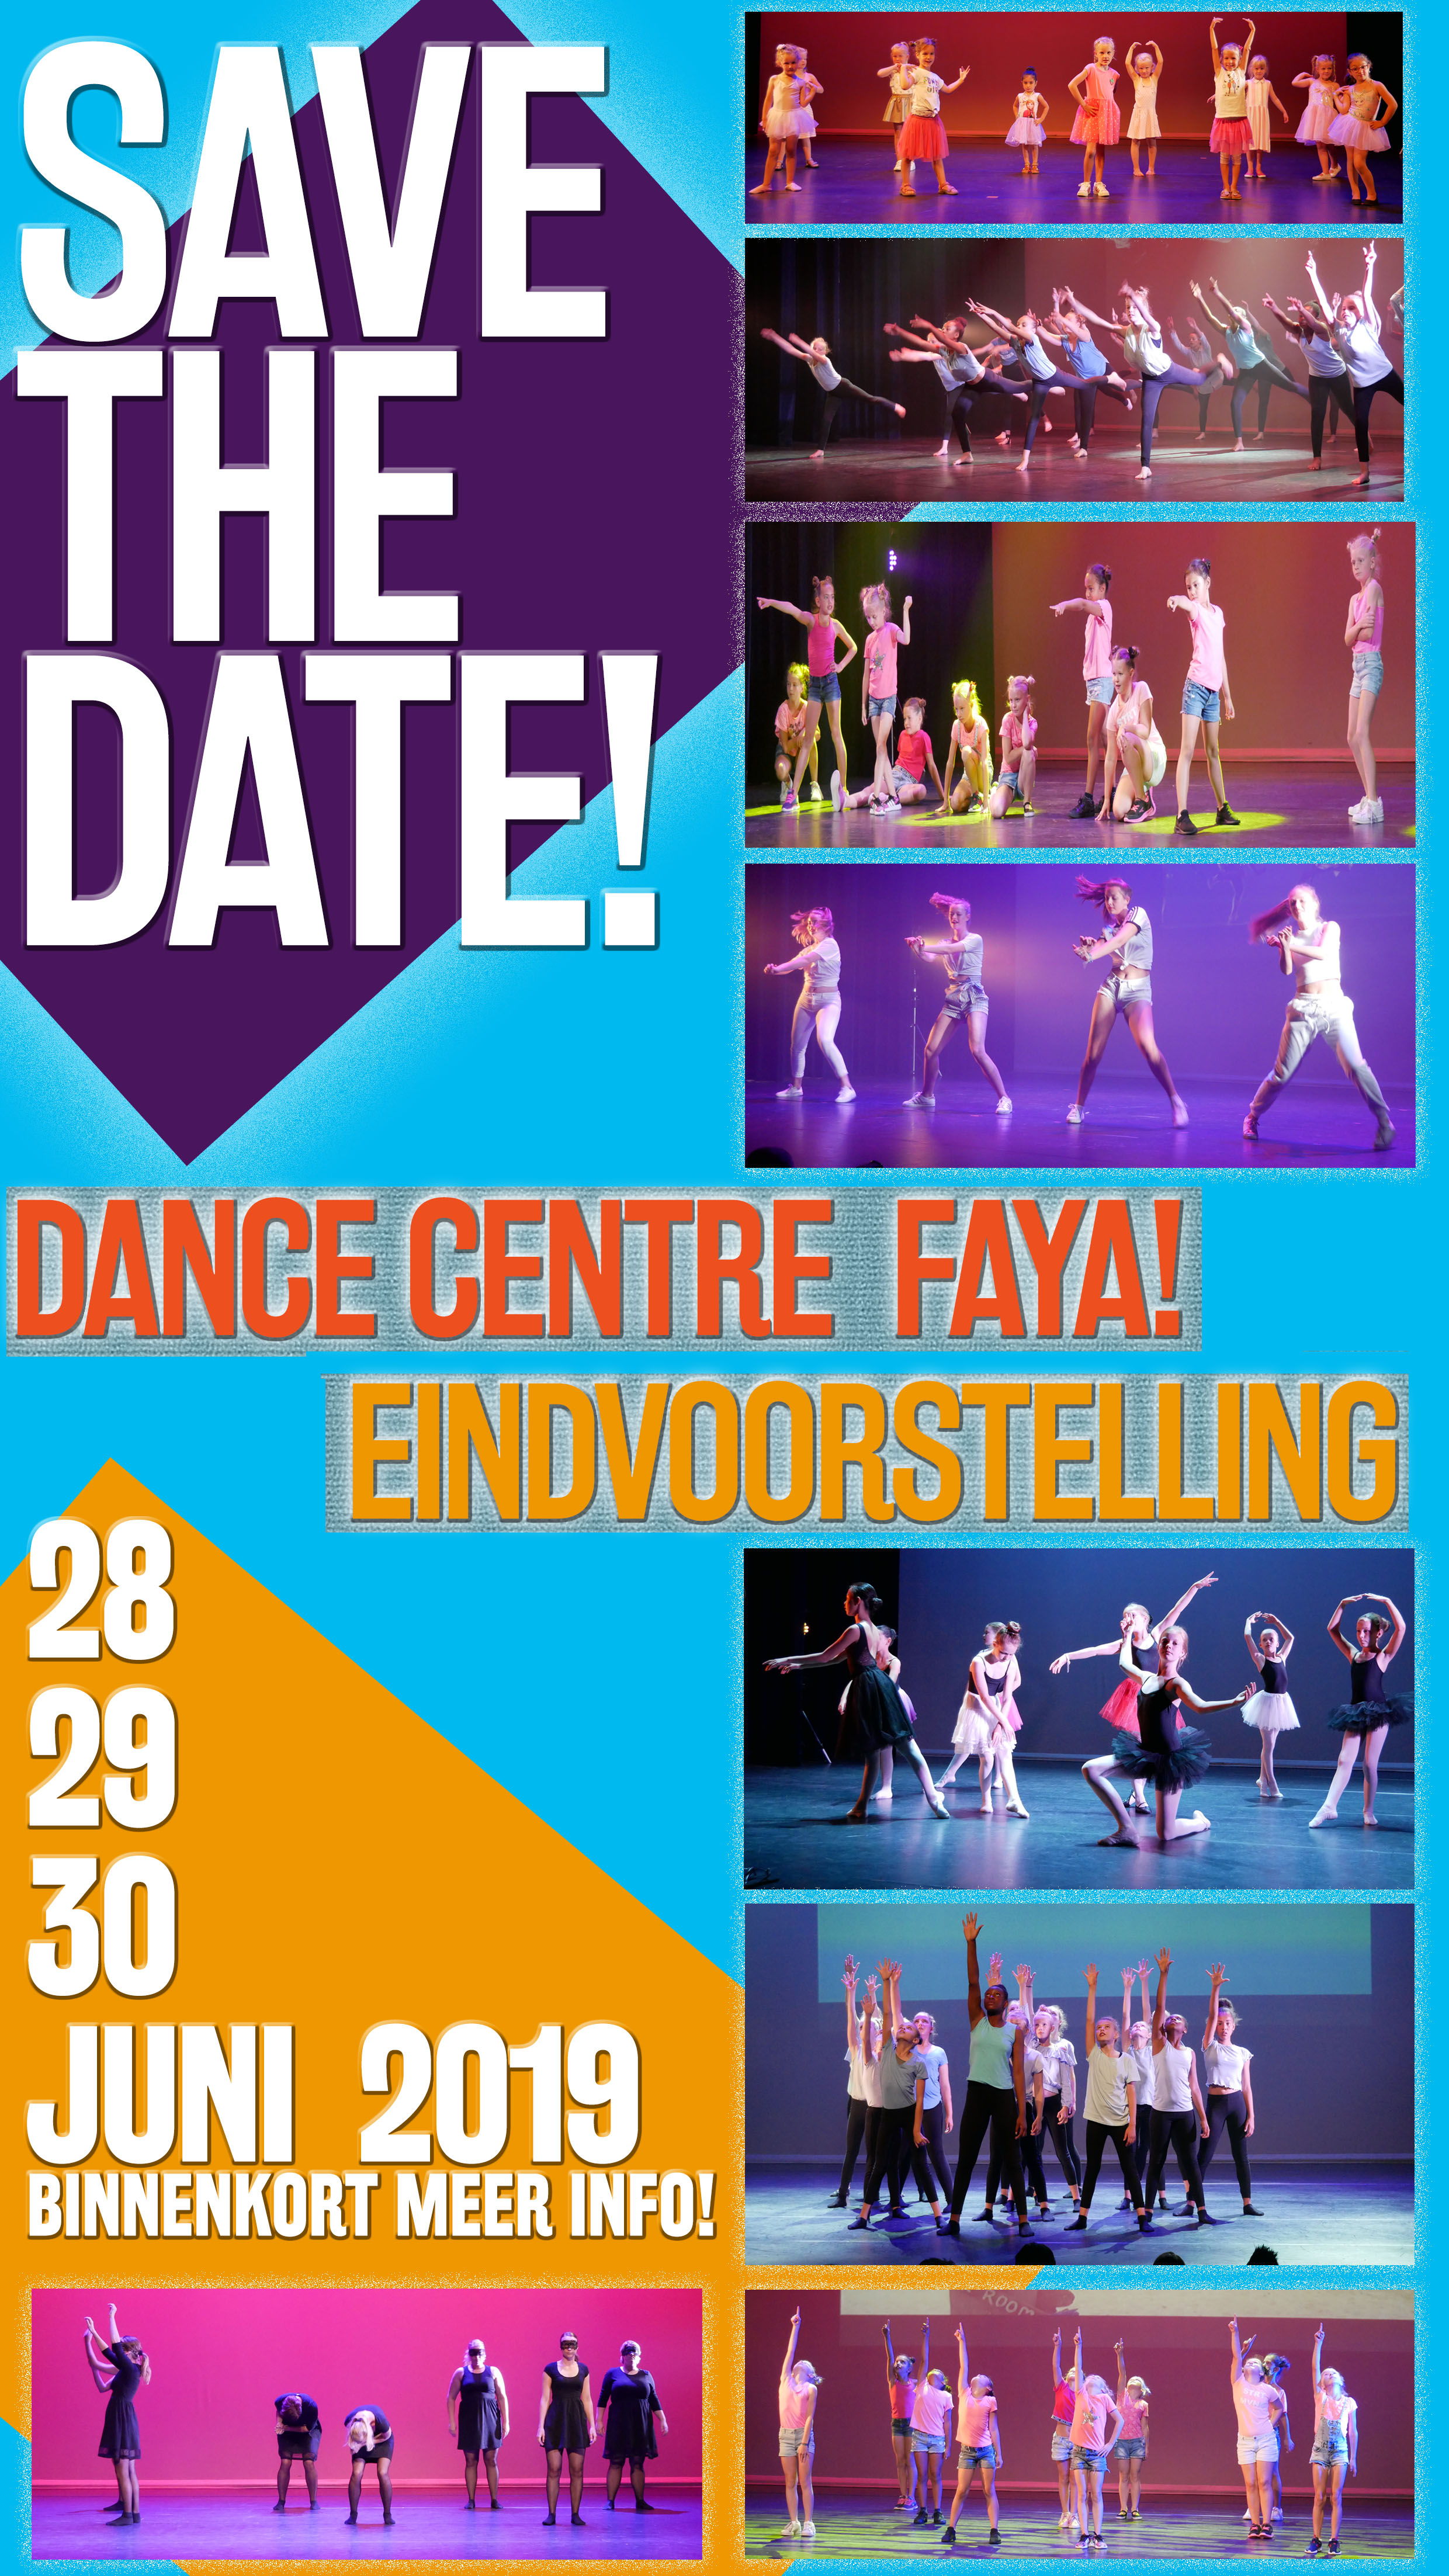 SAVE THE DATE EINDVOORSTELLING 2019 kl